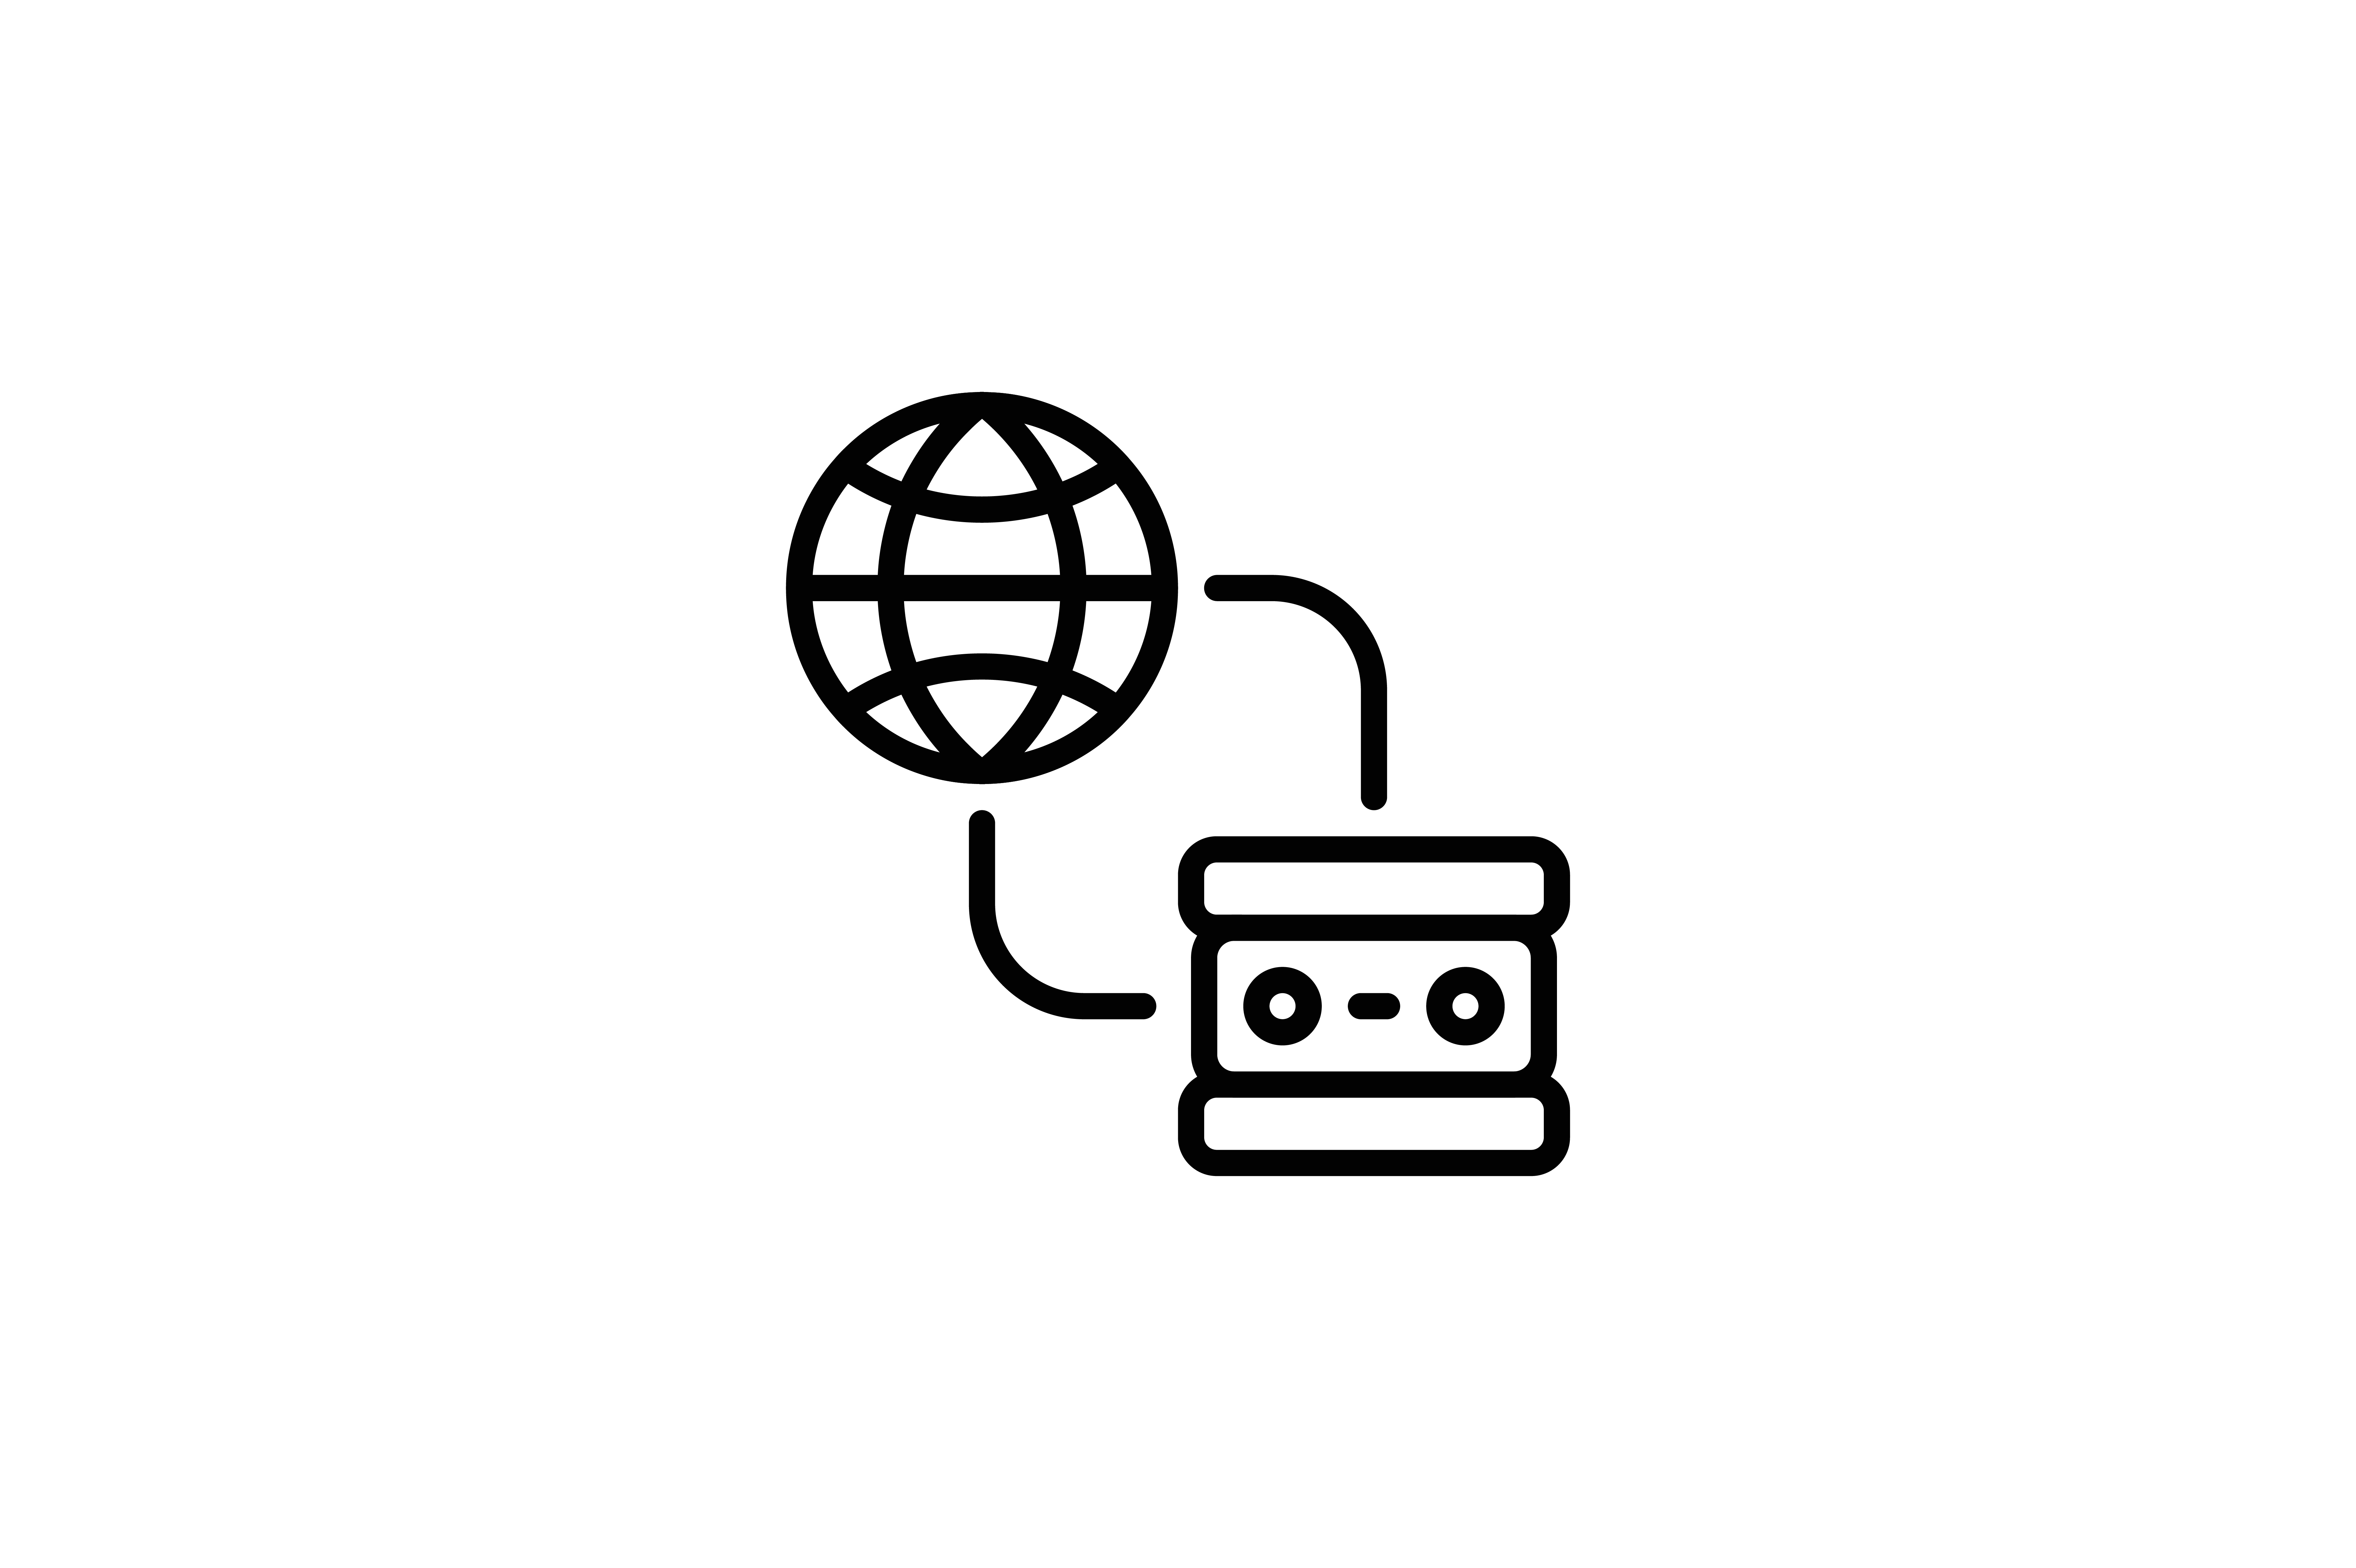 Download Free Database Icon Graphic By Atastudio 2 Creative Fabrica for Cricut Explore, Silhouette and other cutting machines.